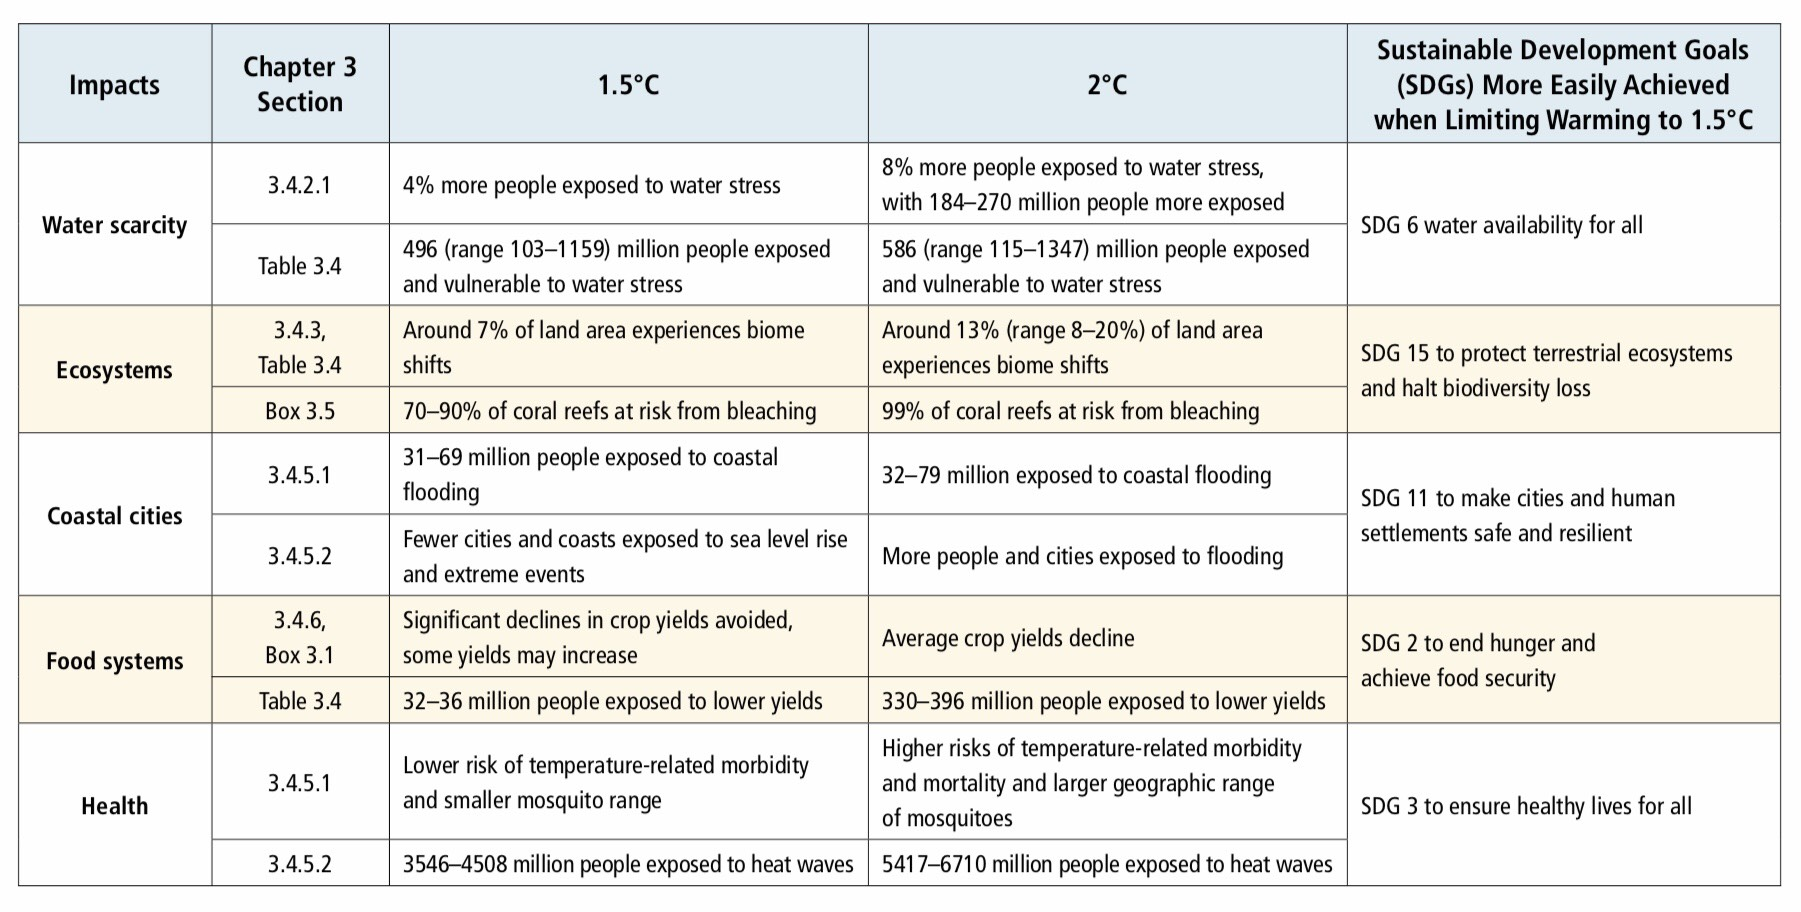 Figure from IPCC Special Report on Global Warming of 1.5°C